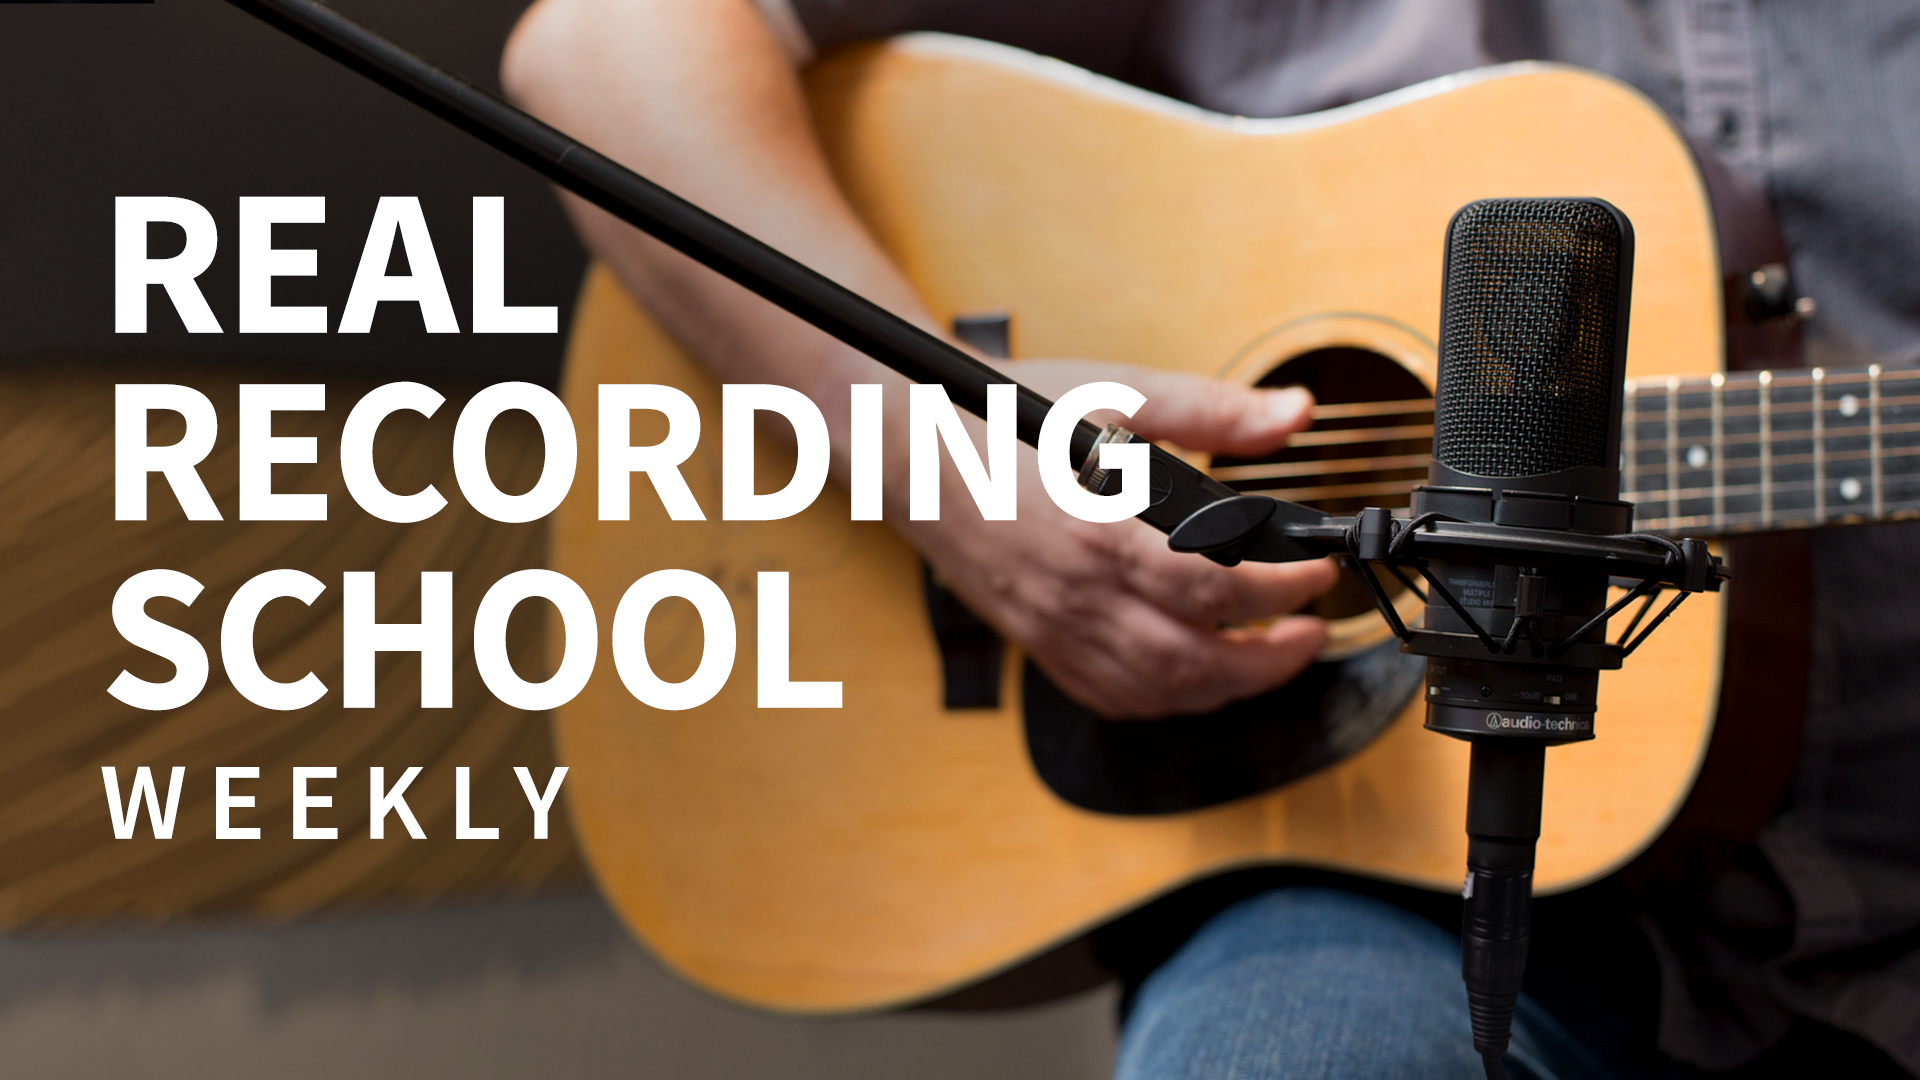 Kick drum low end in the mix: Real Recording School Weekly